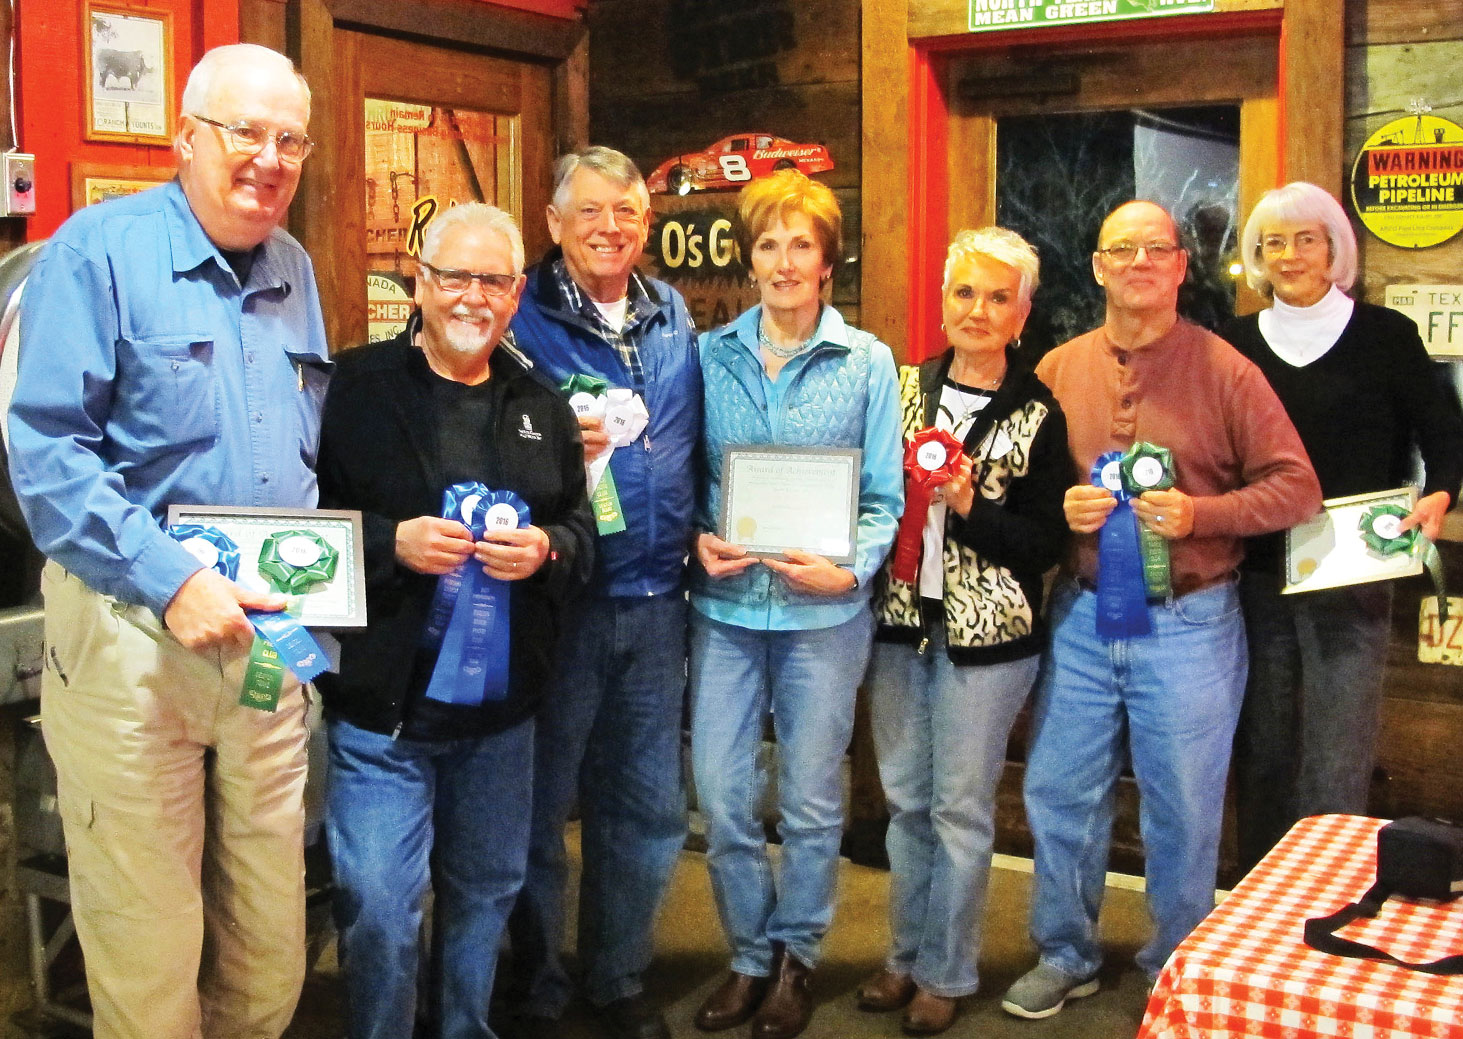 Image competition winners, left to right: Terry Brown, Randy Hatcher, Ron Ice, Ann Brackeen, Rhonda Pummill, Pat Powers and Jan Goodwin; not pictured: Jack Twiggs and Bill Cashin